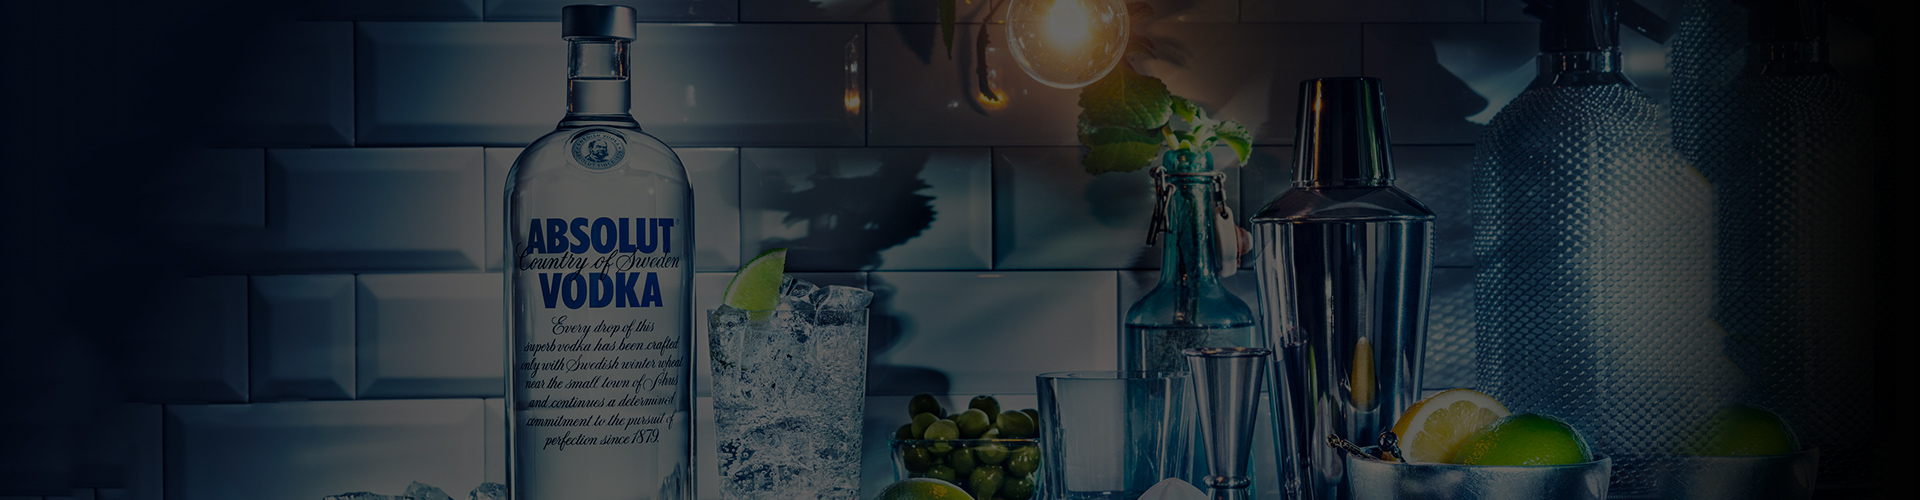 To reduce time-to-market, Absolut looks to SQL Server to help render its spirited brand in the cloud.